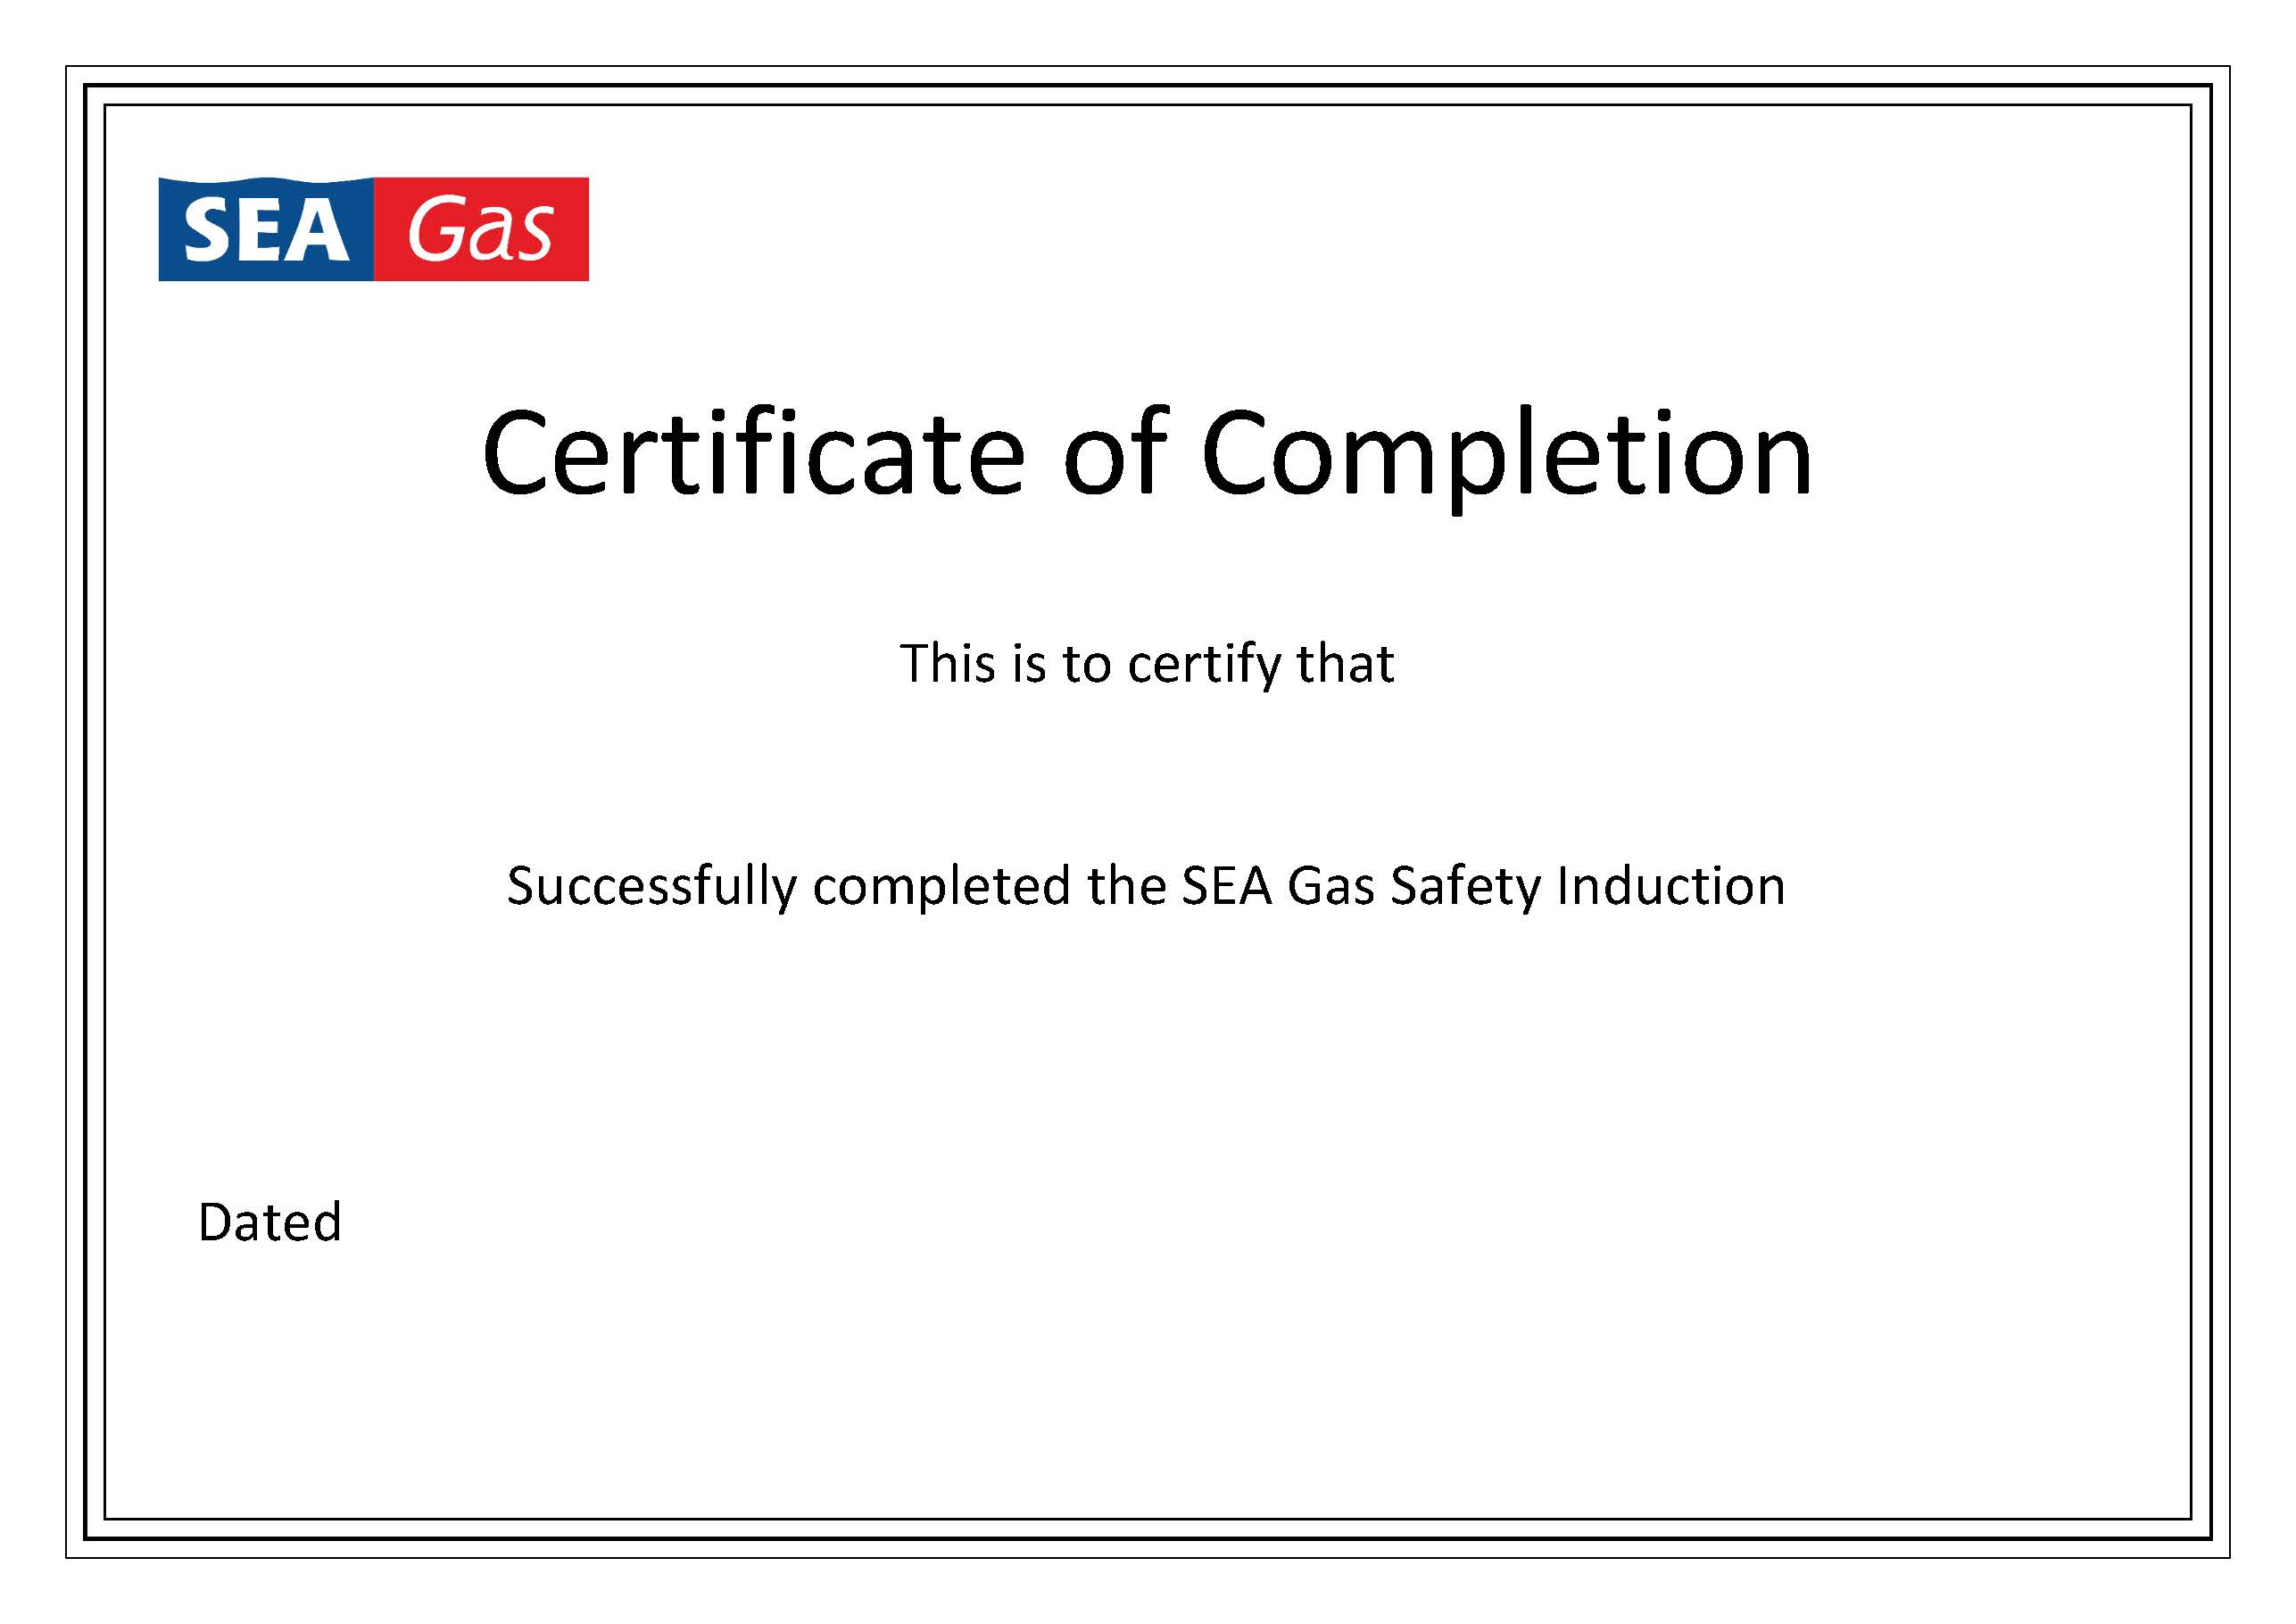 Certificate of Completion Template | SEA Gas